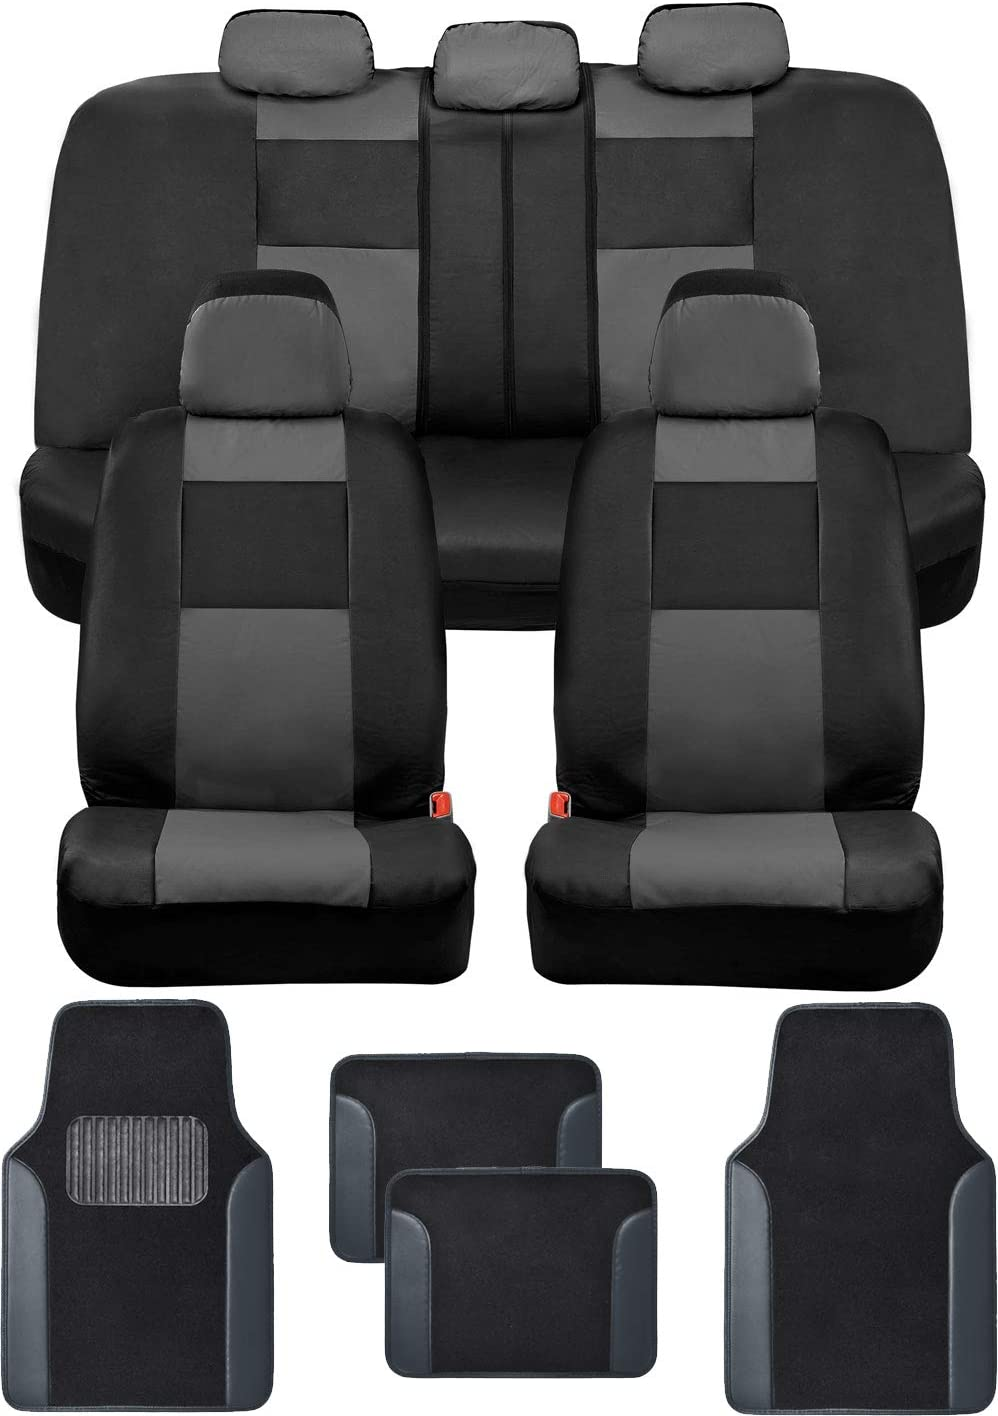 BDK Mesa Mall Croc Skin OFFicial shop Faux Leather Car with Carpet Seat Full Set Covers